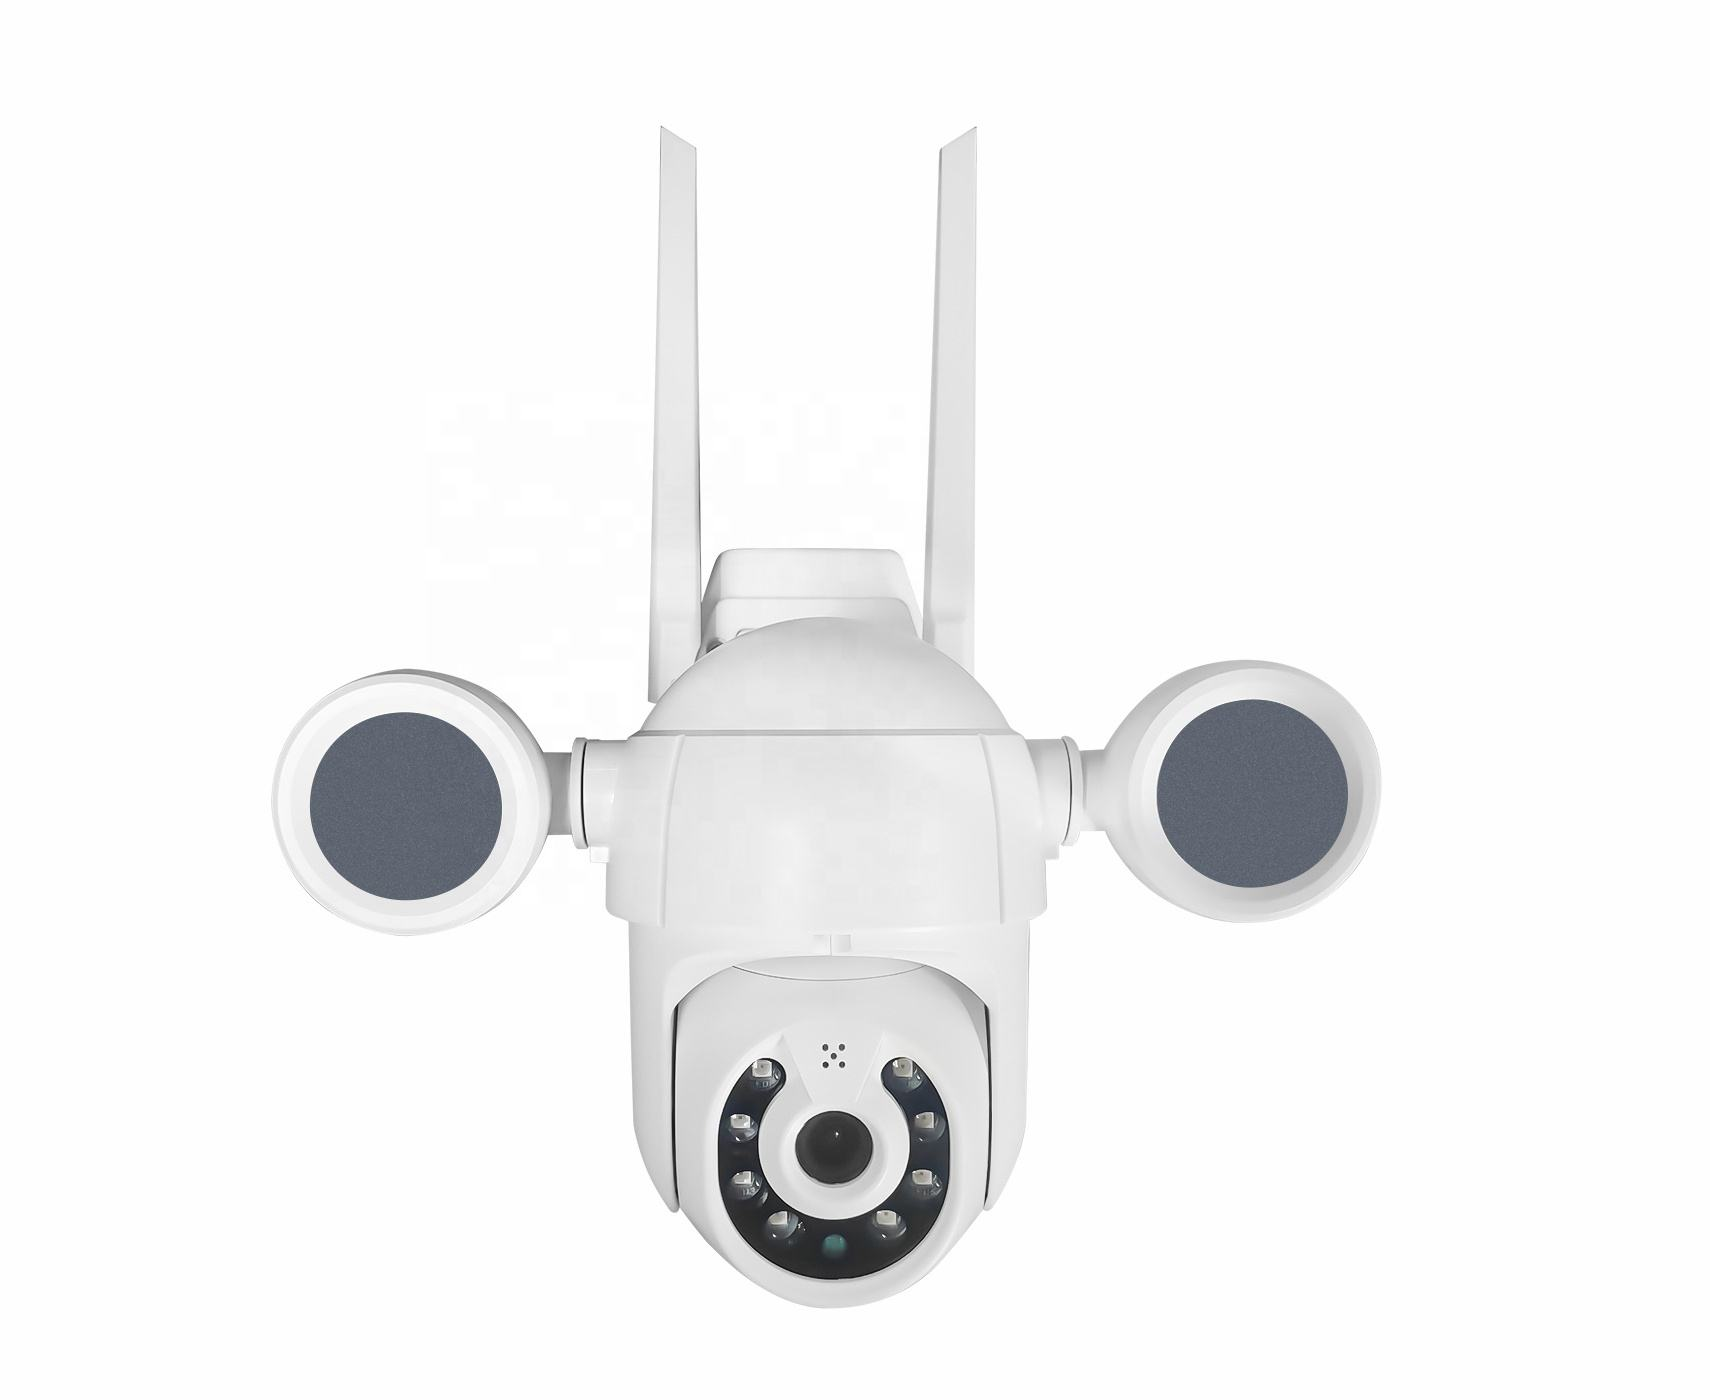 Tuya 2MP Wifi Ip 1080P Beveiliging Draadloze <span class=keywords><strong>Camera</strong></span> Outdoor Full Color Nachtzicht Binnenplaats Lichten Wifi Ip Ptz <span class=keywords><strong>Camera</strong></span>